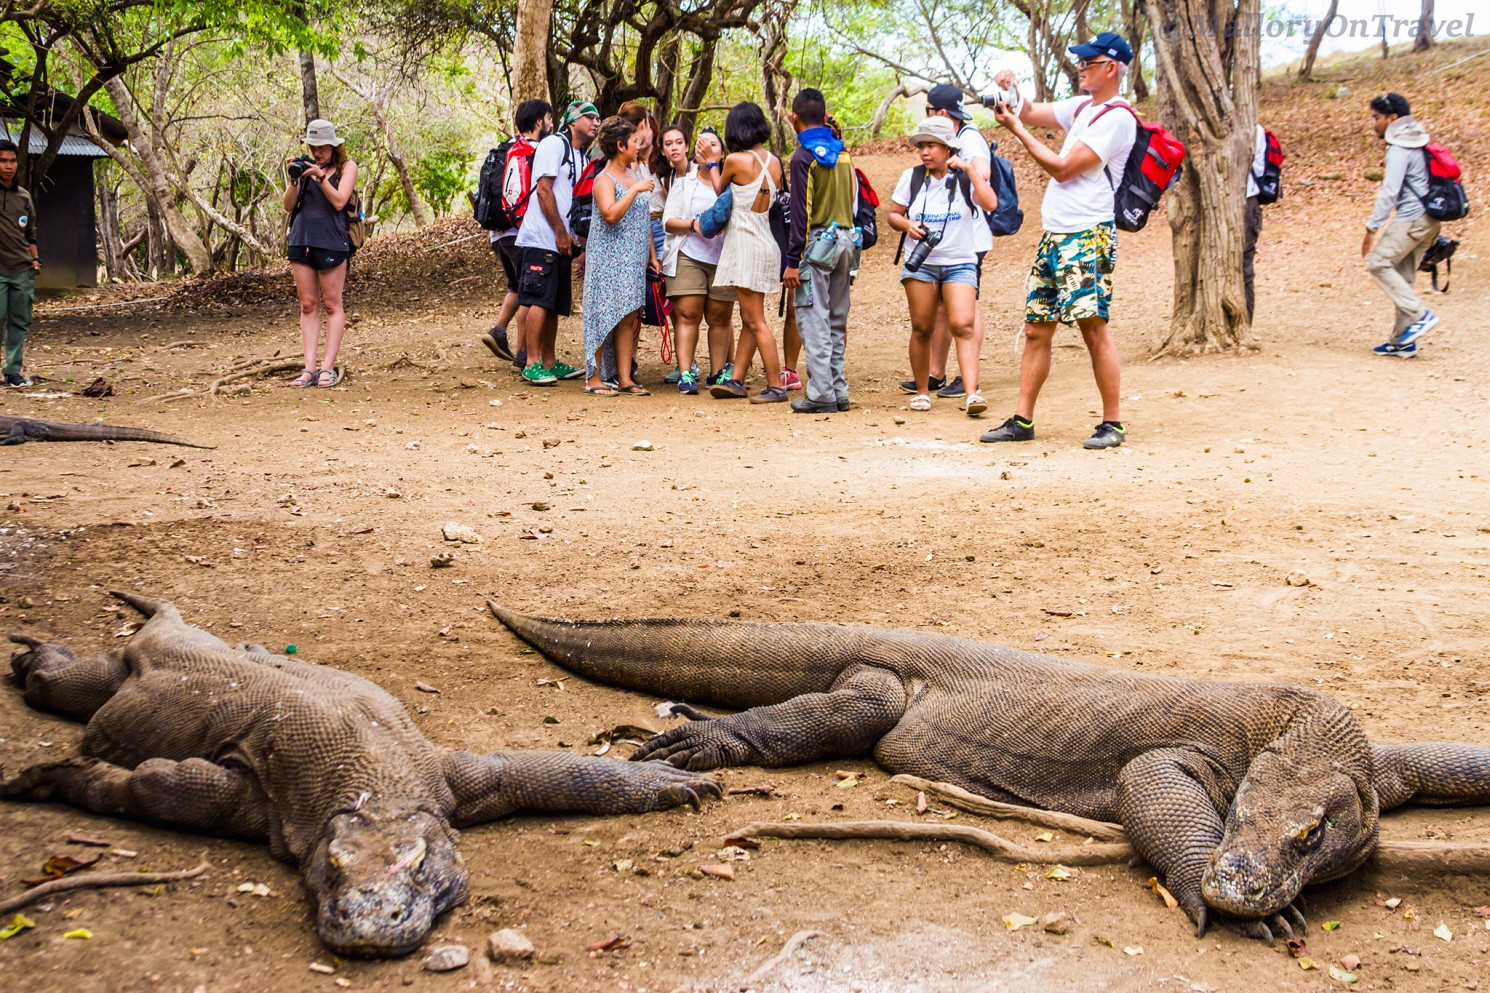 Komodo dragons the largest species of monitor lizard at Loh Buaya on Rinca island in the Komodo archipelago of the Republic of Indonesia Iain_Mallory_Indo14712